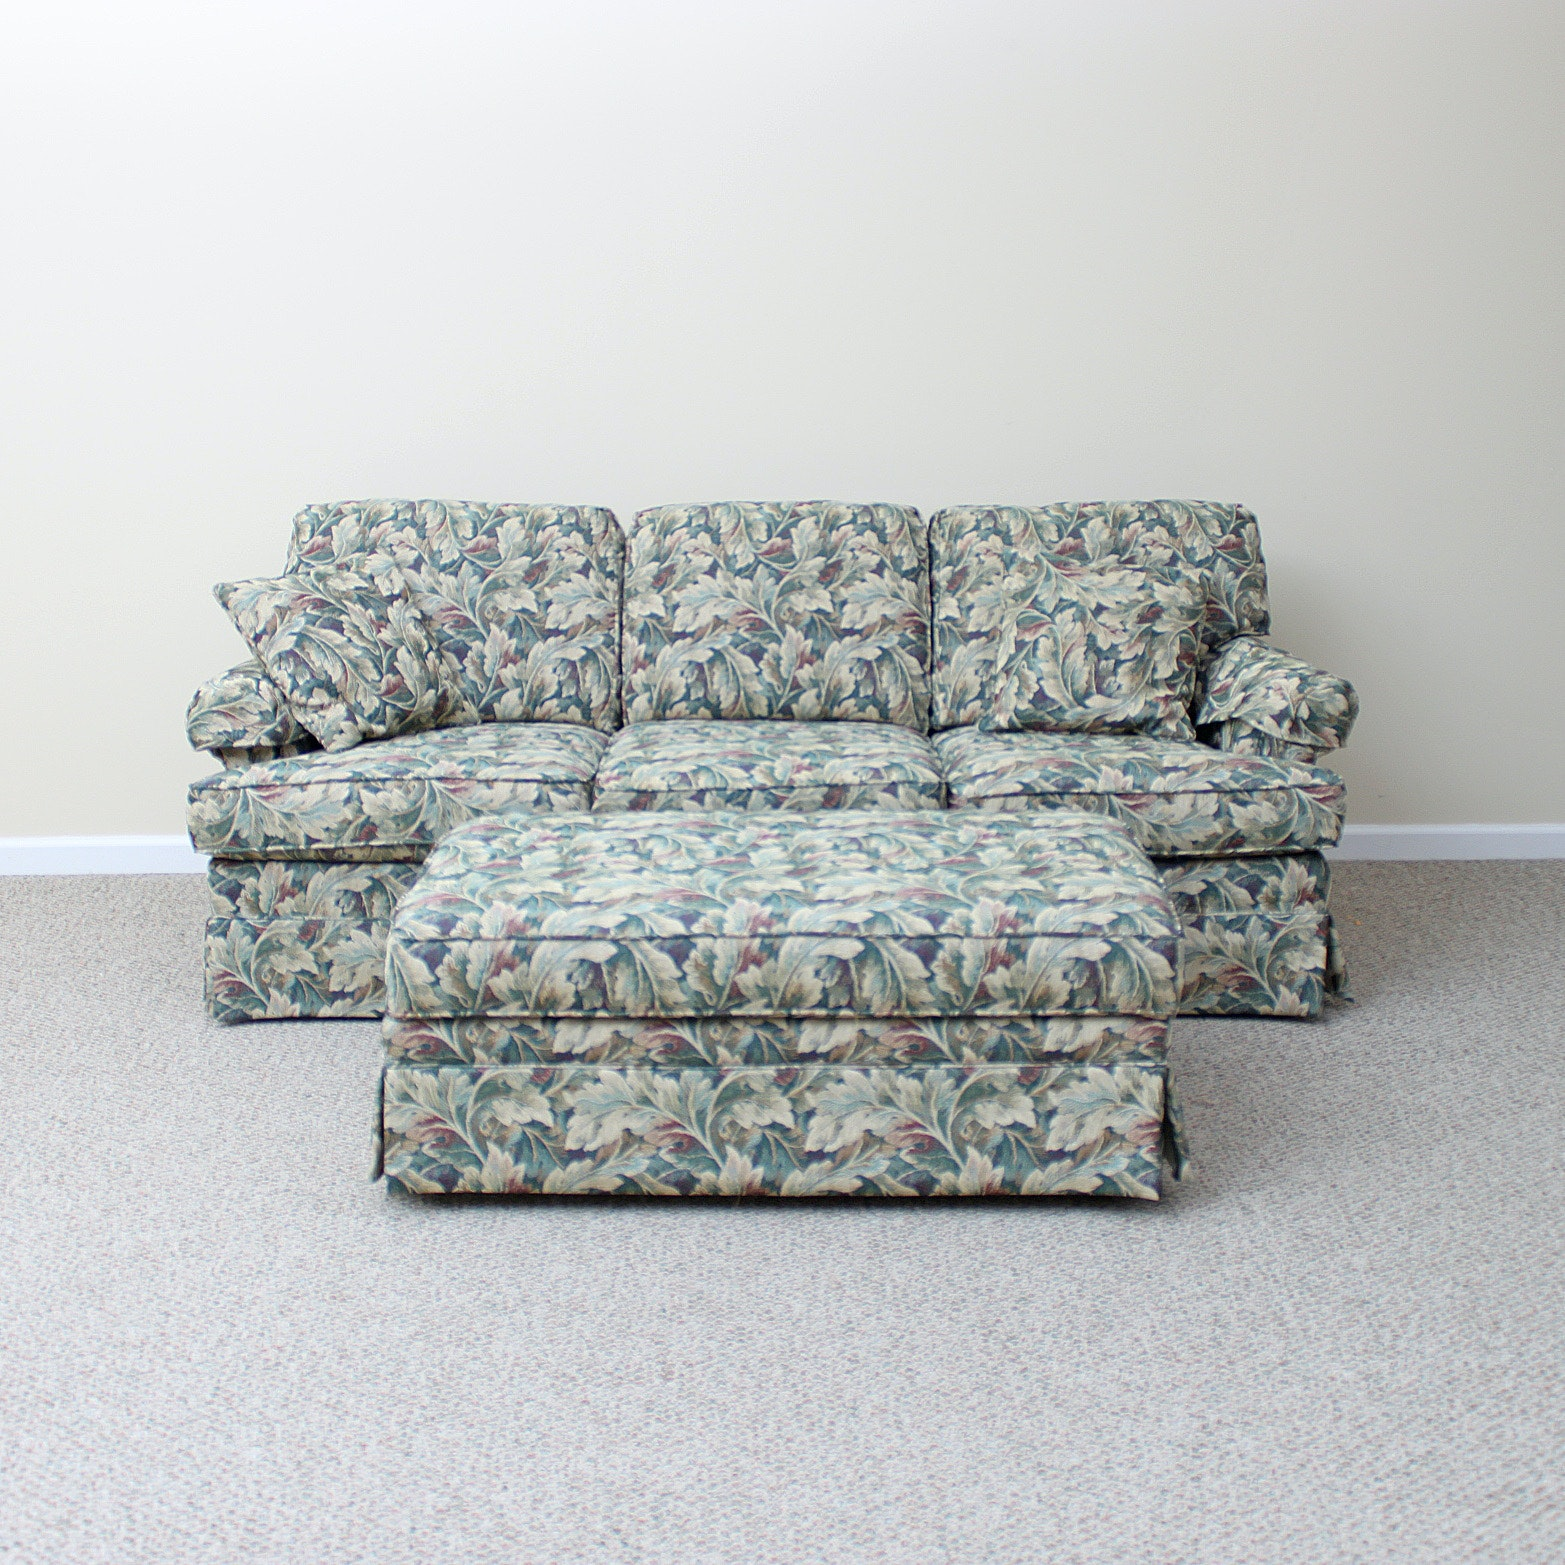 Flexsteel Sofa And Storage Ottoman In Leaf Patterned Upholstery ...